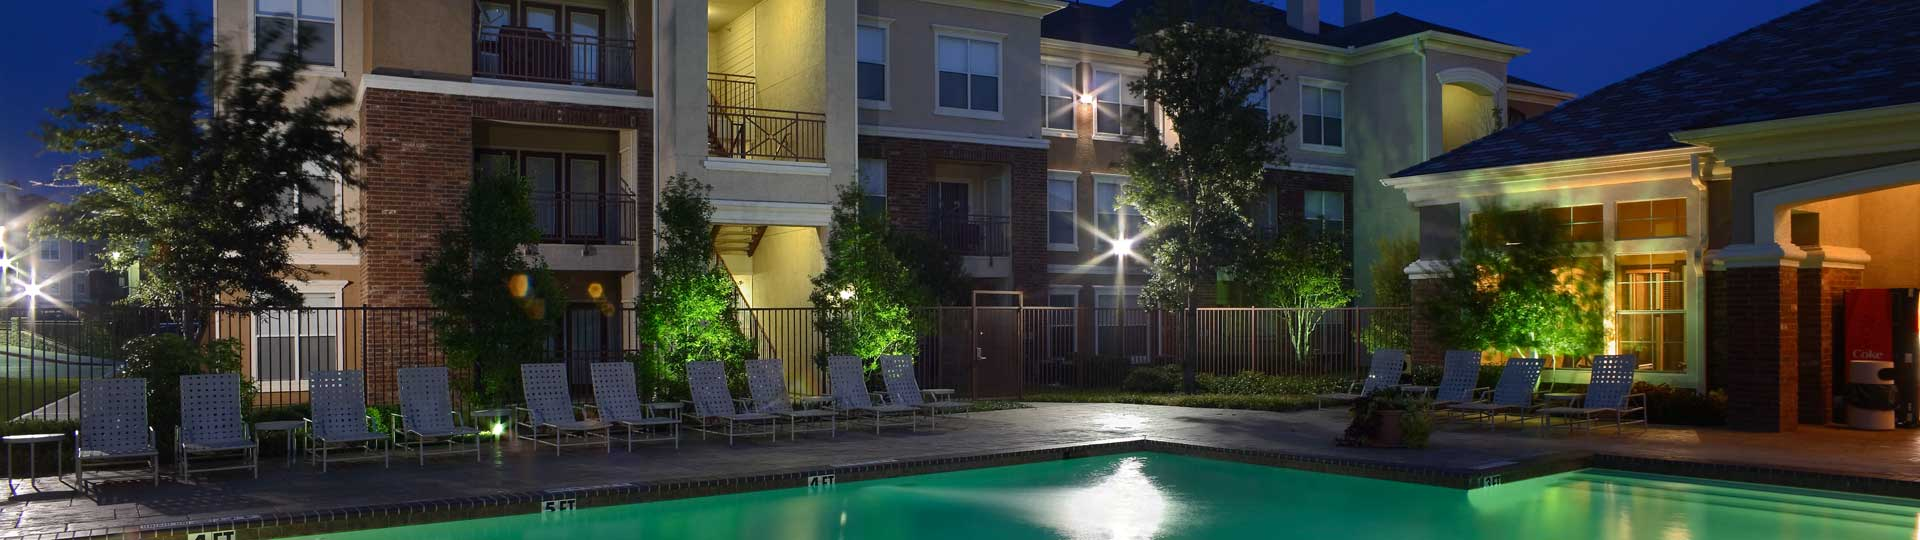 Refinancing of a multifamily property